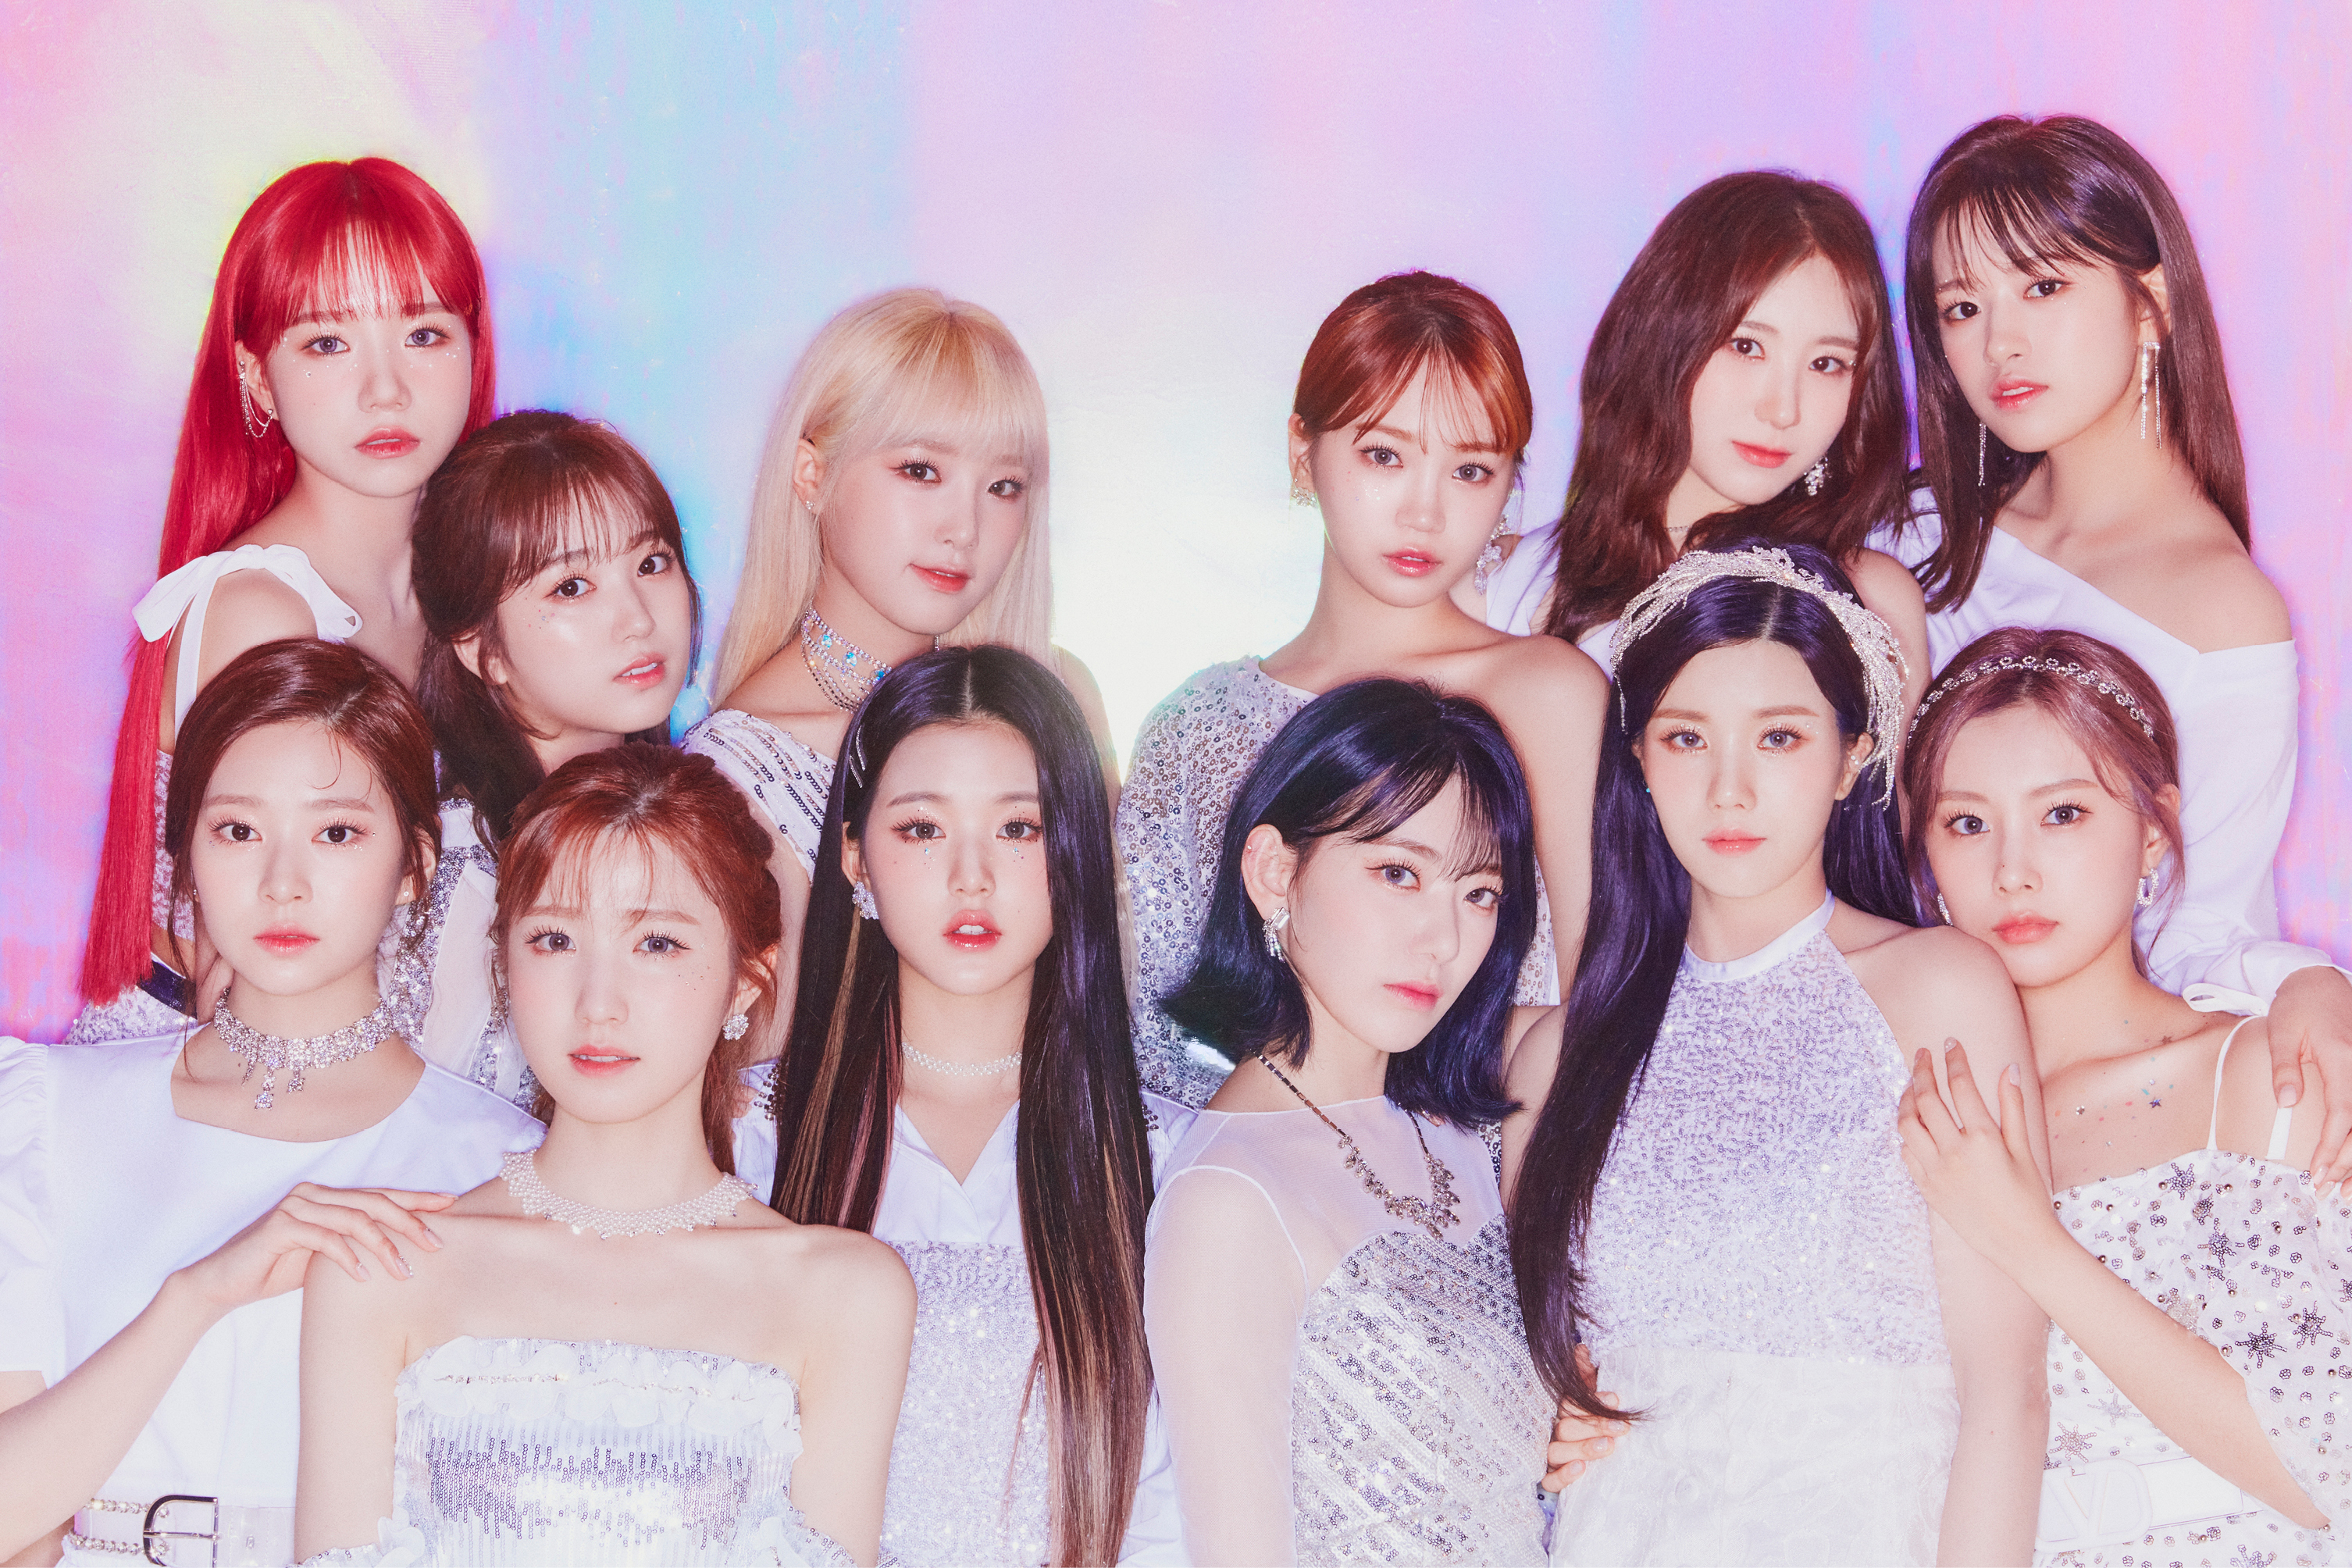 Mnet publishes statement on the future of IZ * ONE